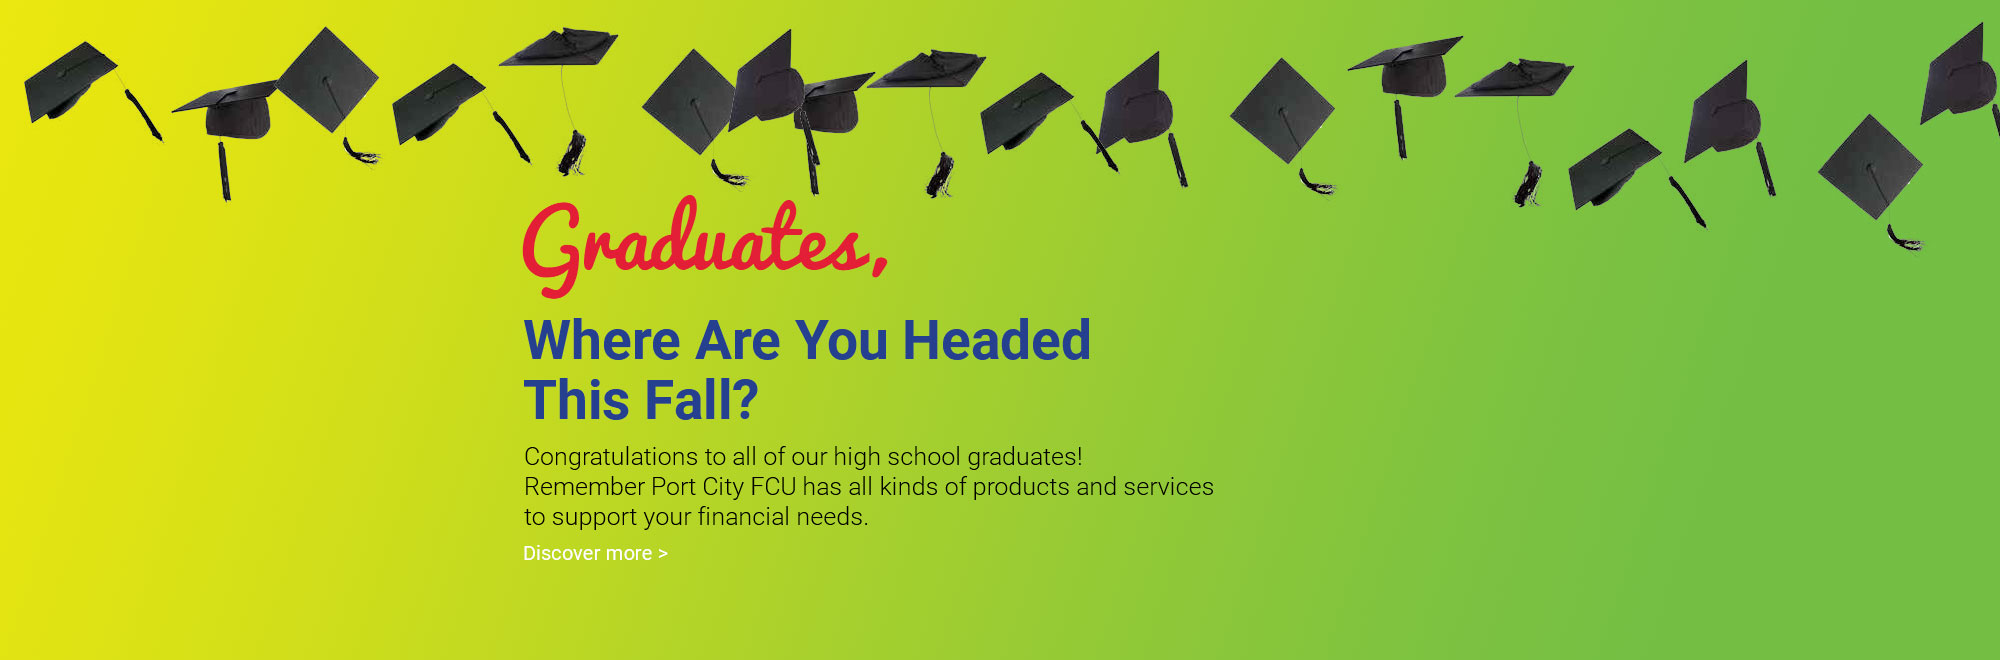 Congratulations to All of Our High School Graduates